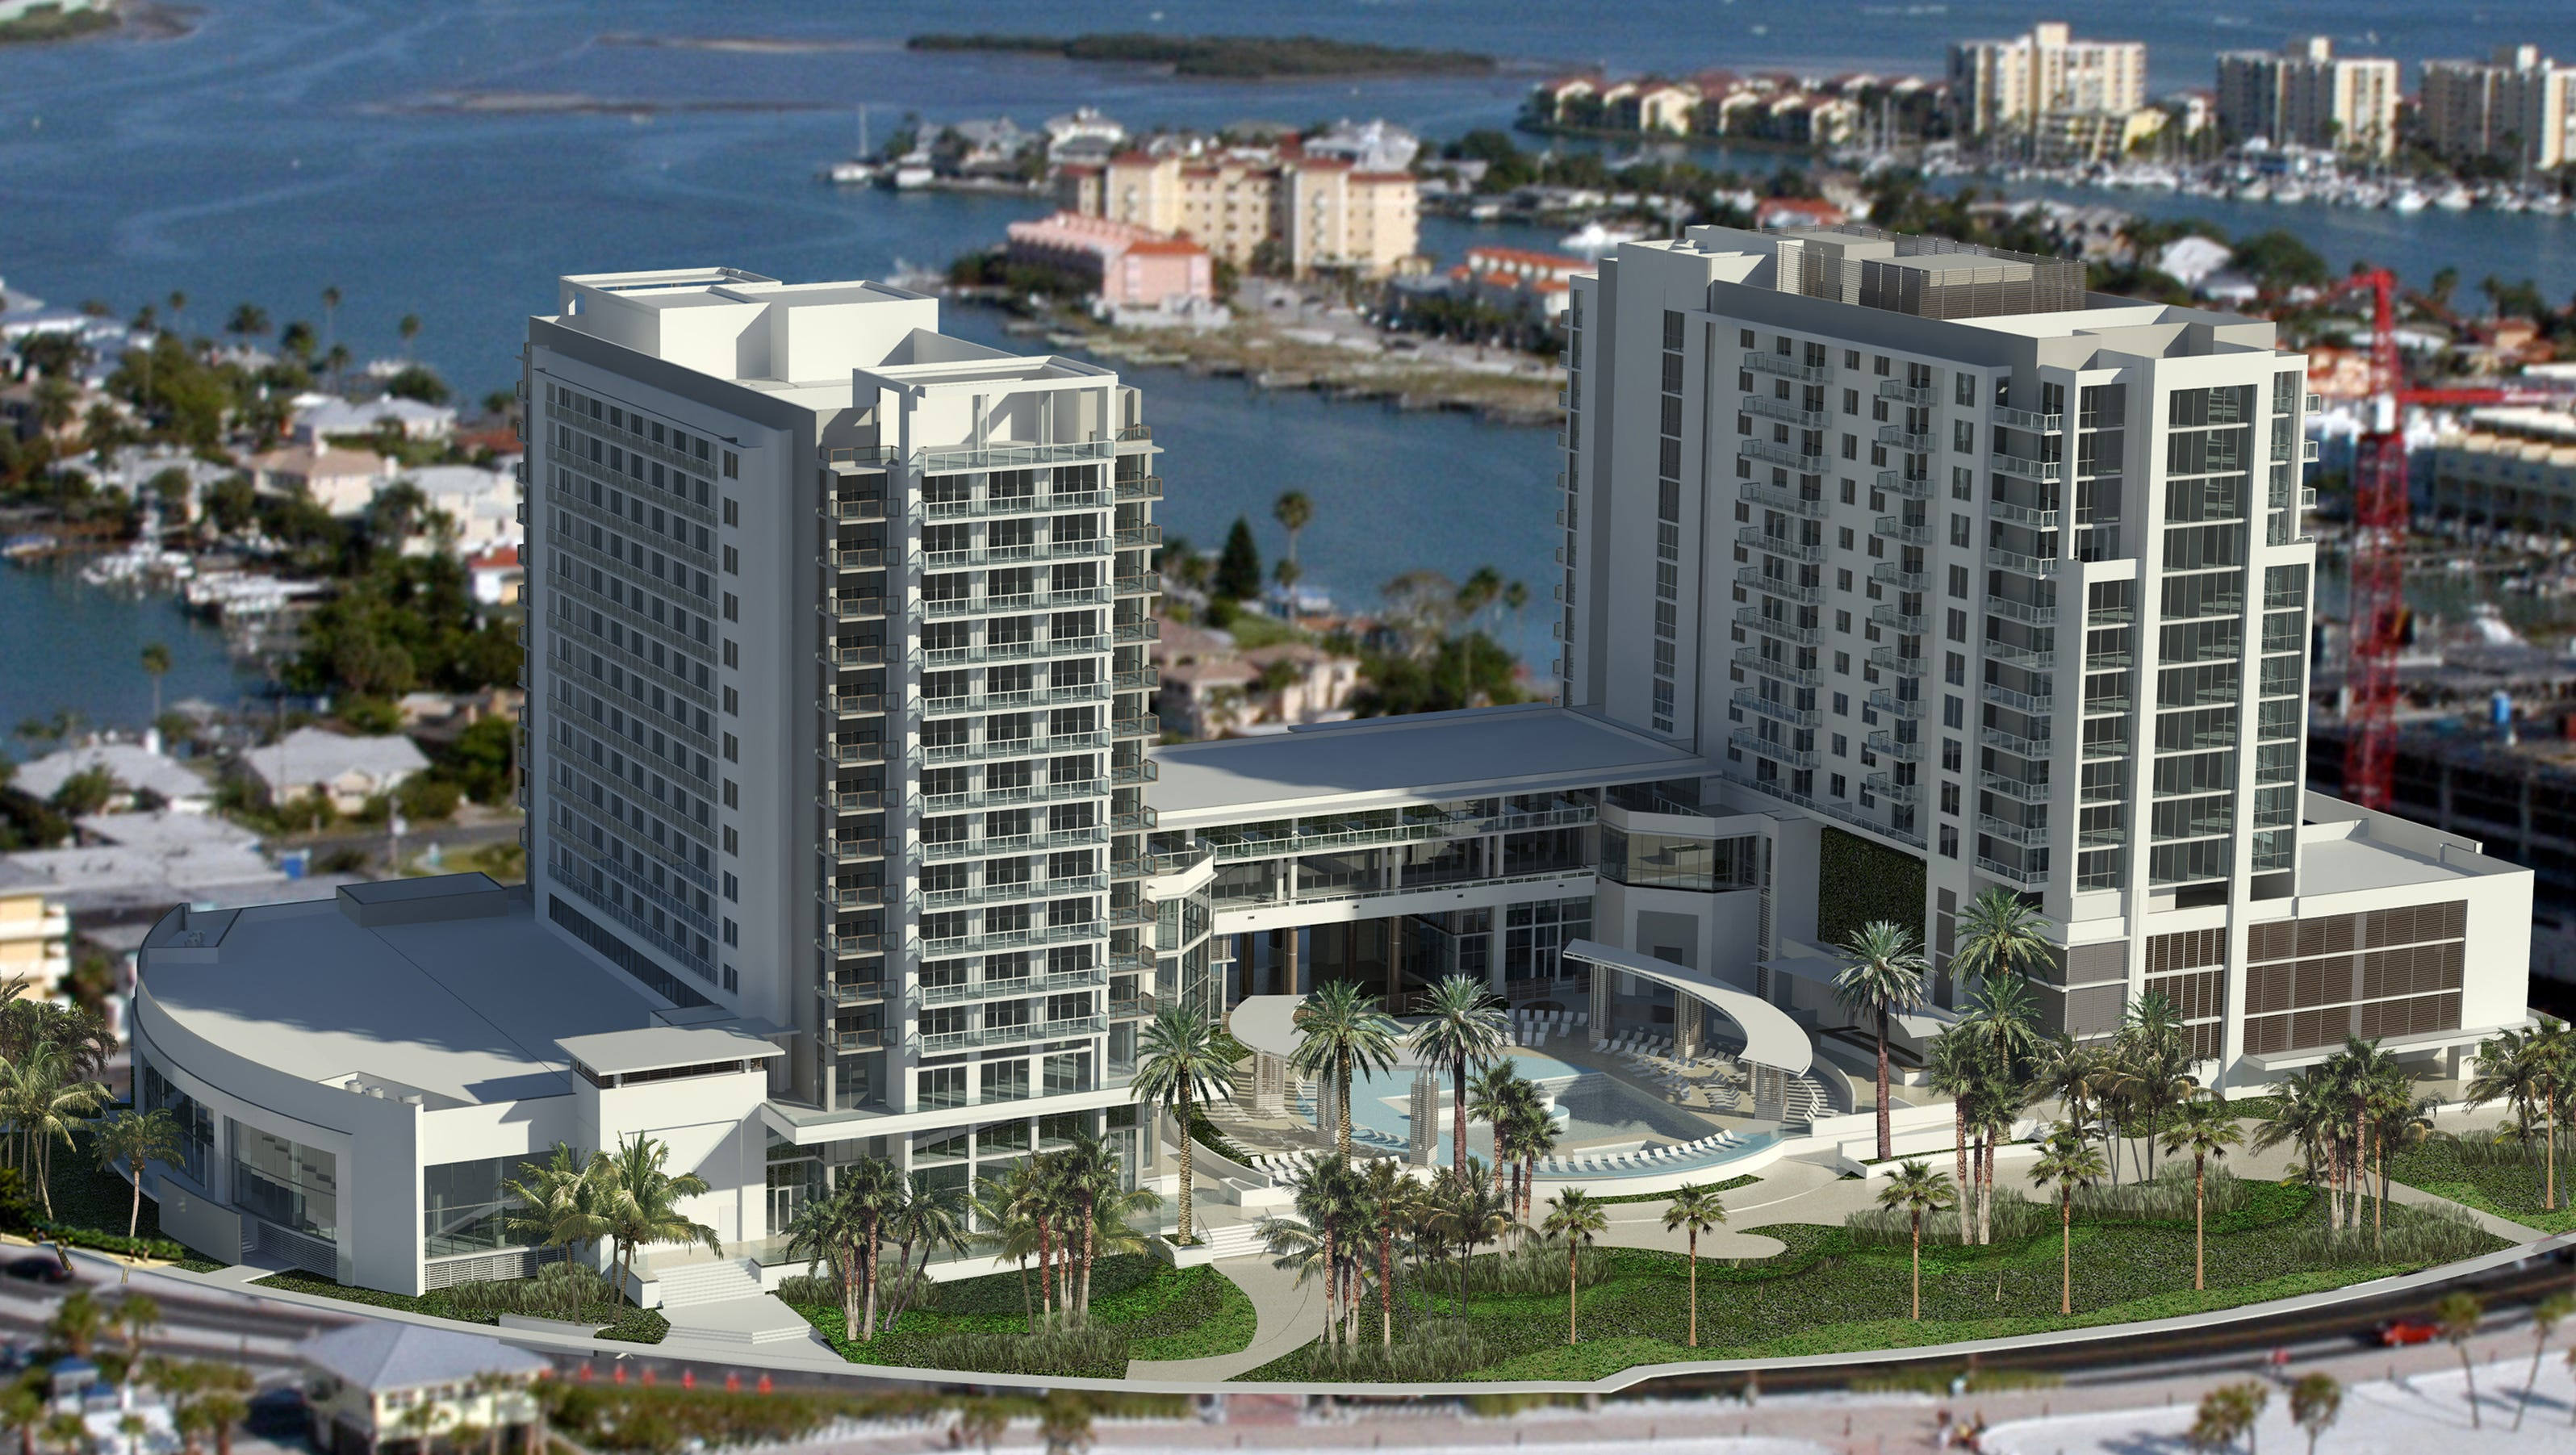 New hotels will change face of Clearwater Beach  WTSP 10